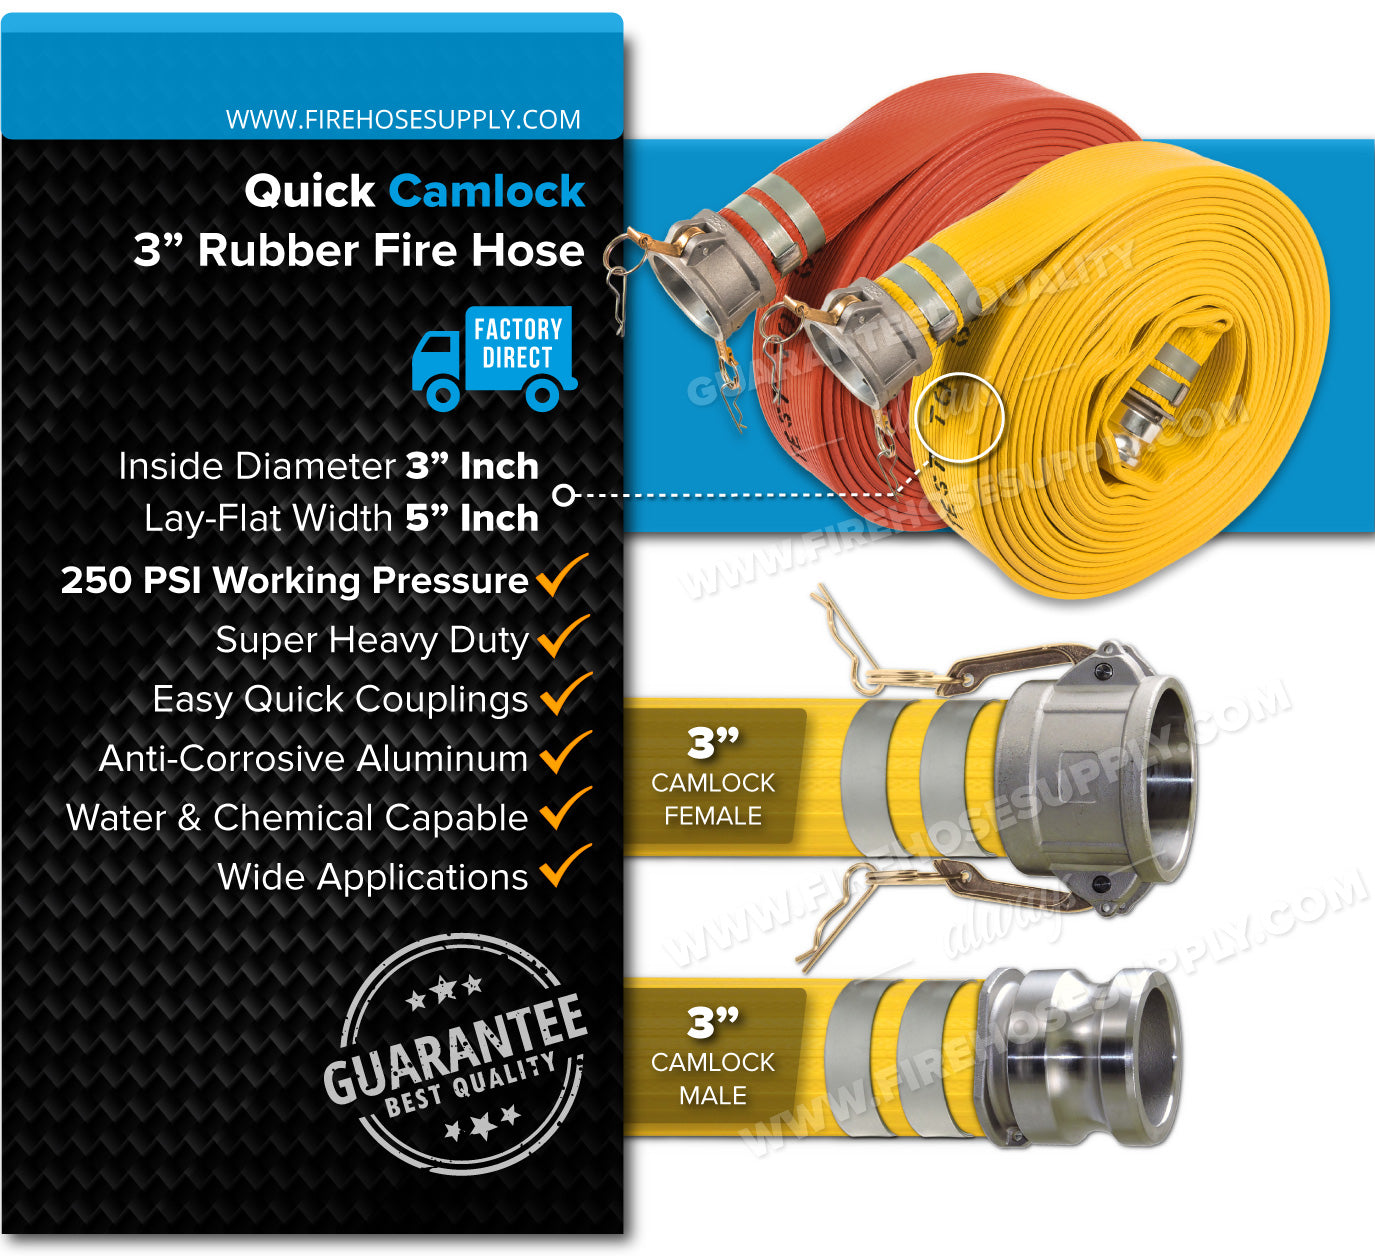 3 Inch Rubber Camlock Fire Hose Overview